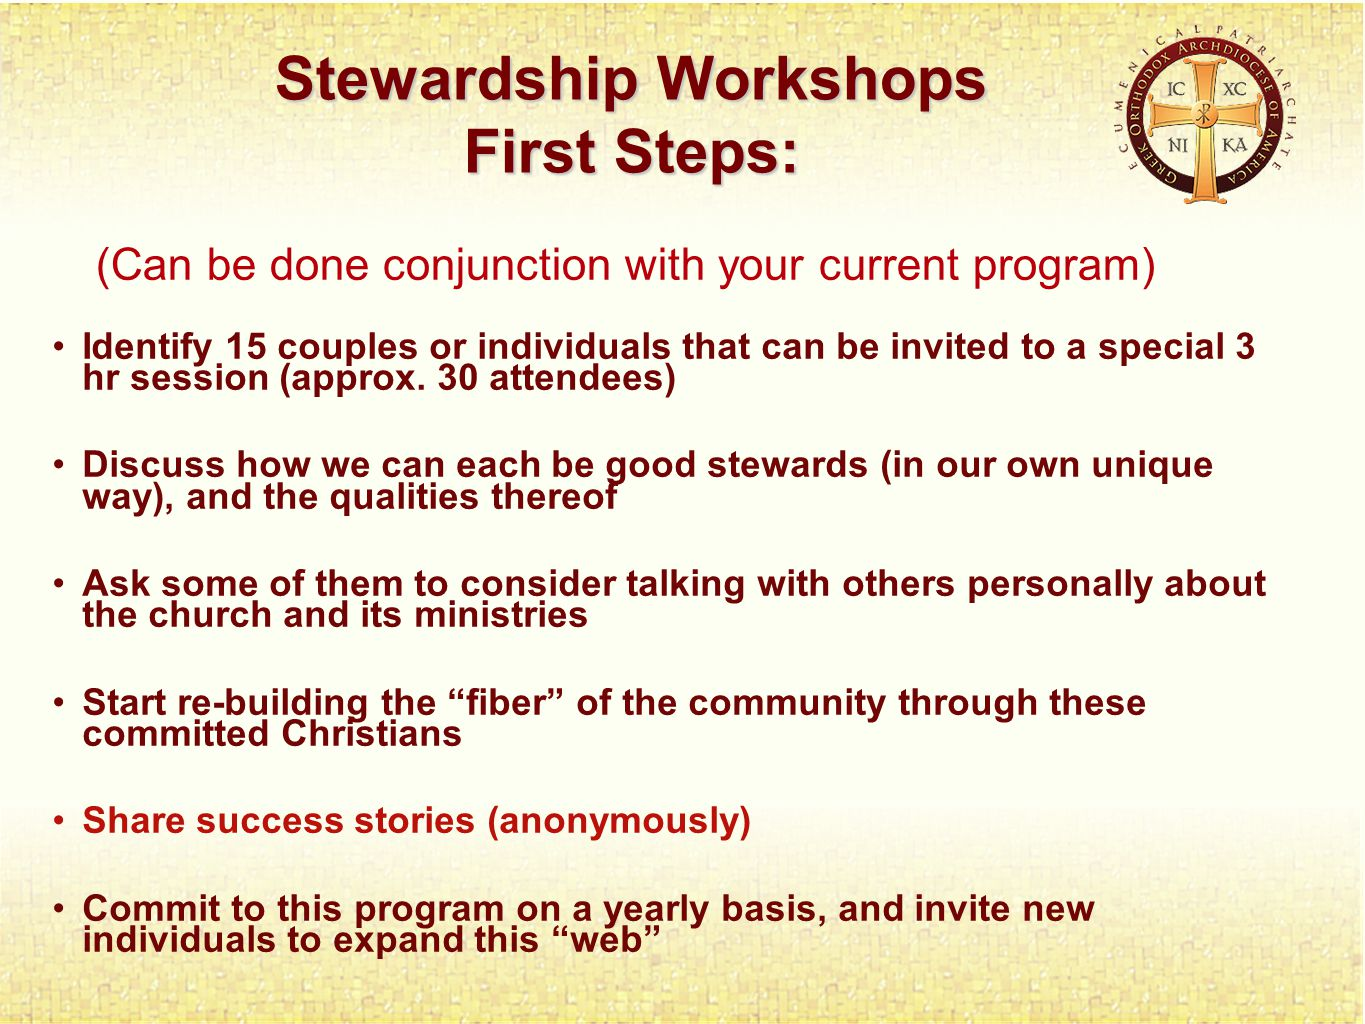 Stewardship Workshops First Steps: Identify 15 couples or individuals that can be invited to a special 3 hr session (approx.